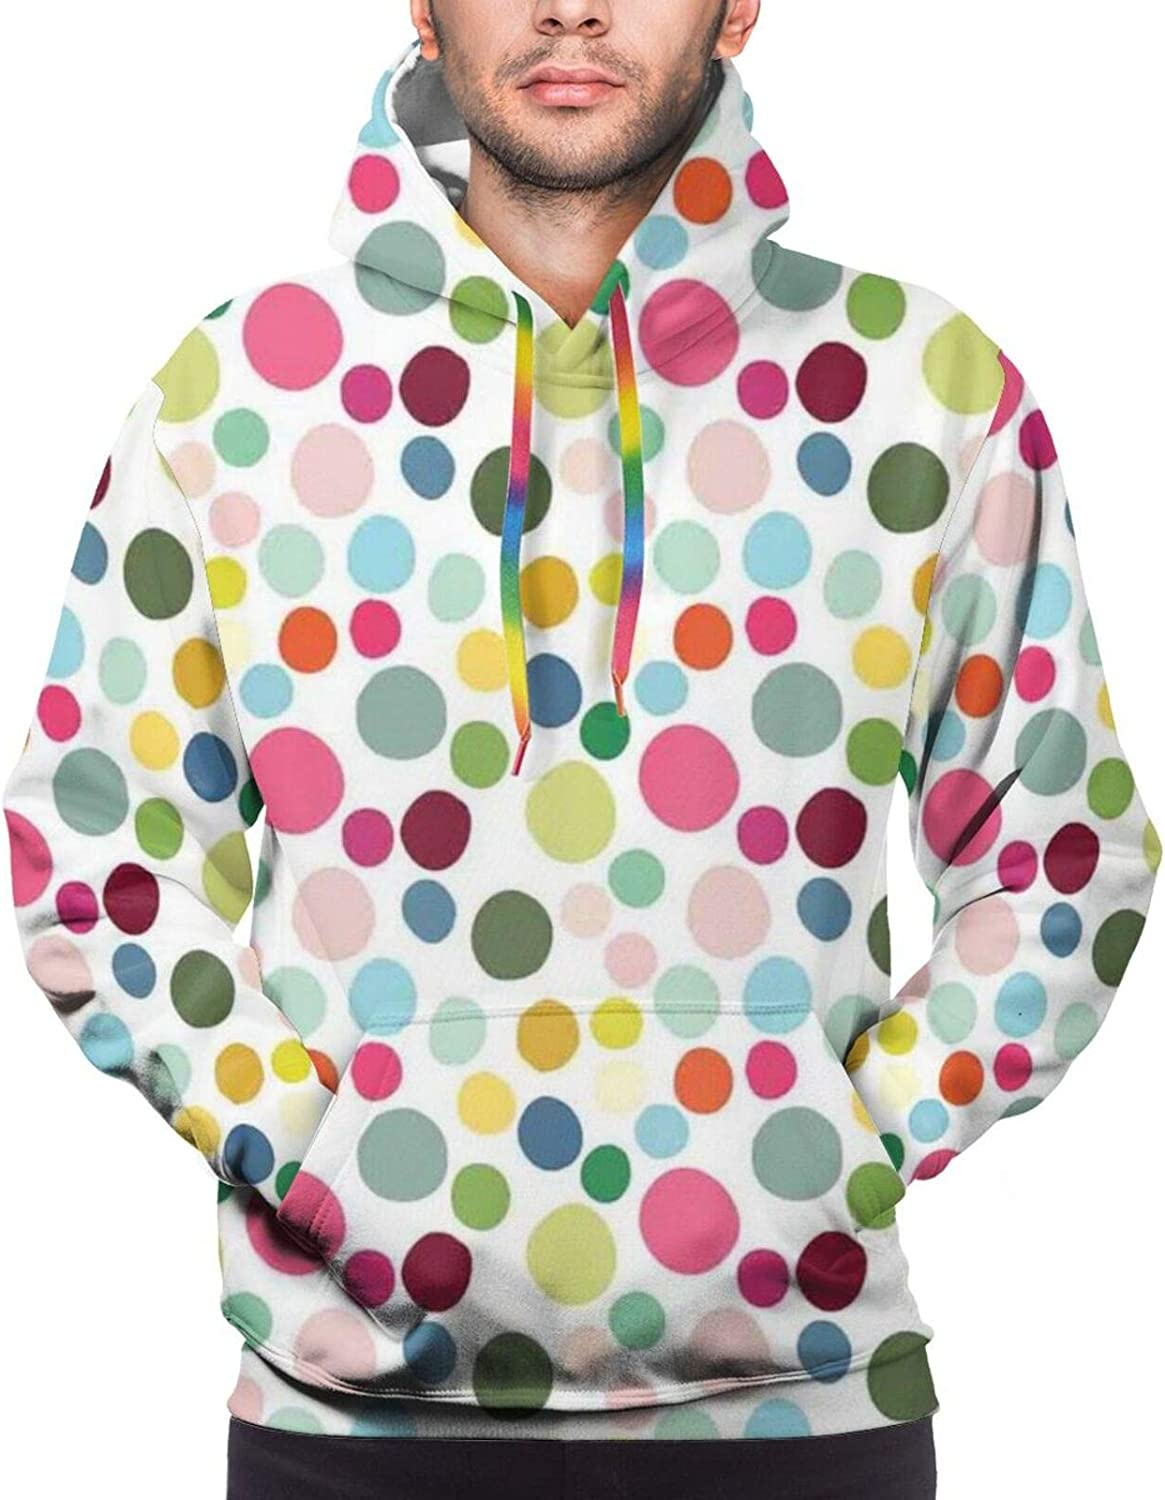 Men's Hoodies Sweatshirts,Abstract Composition of Circular Shapes Colorful Simplistic Design Elements Modern,Small